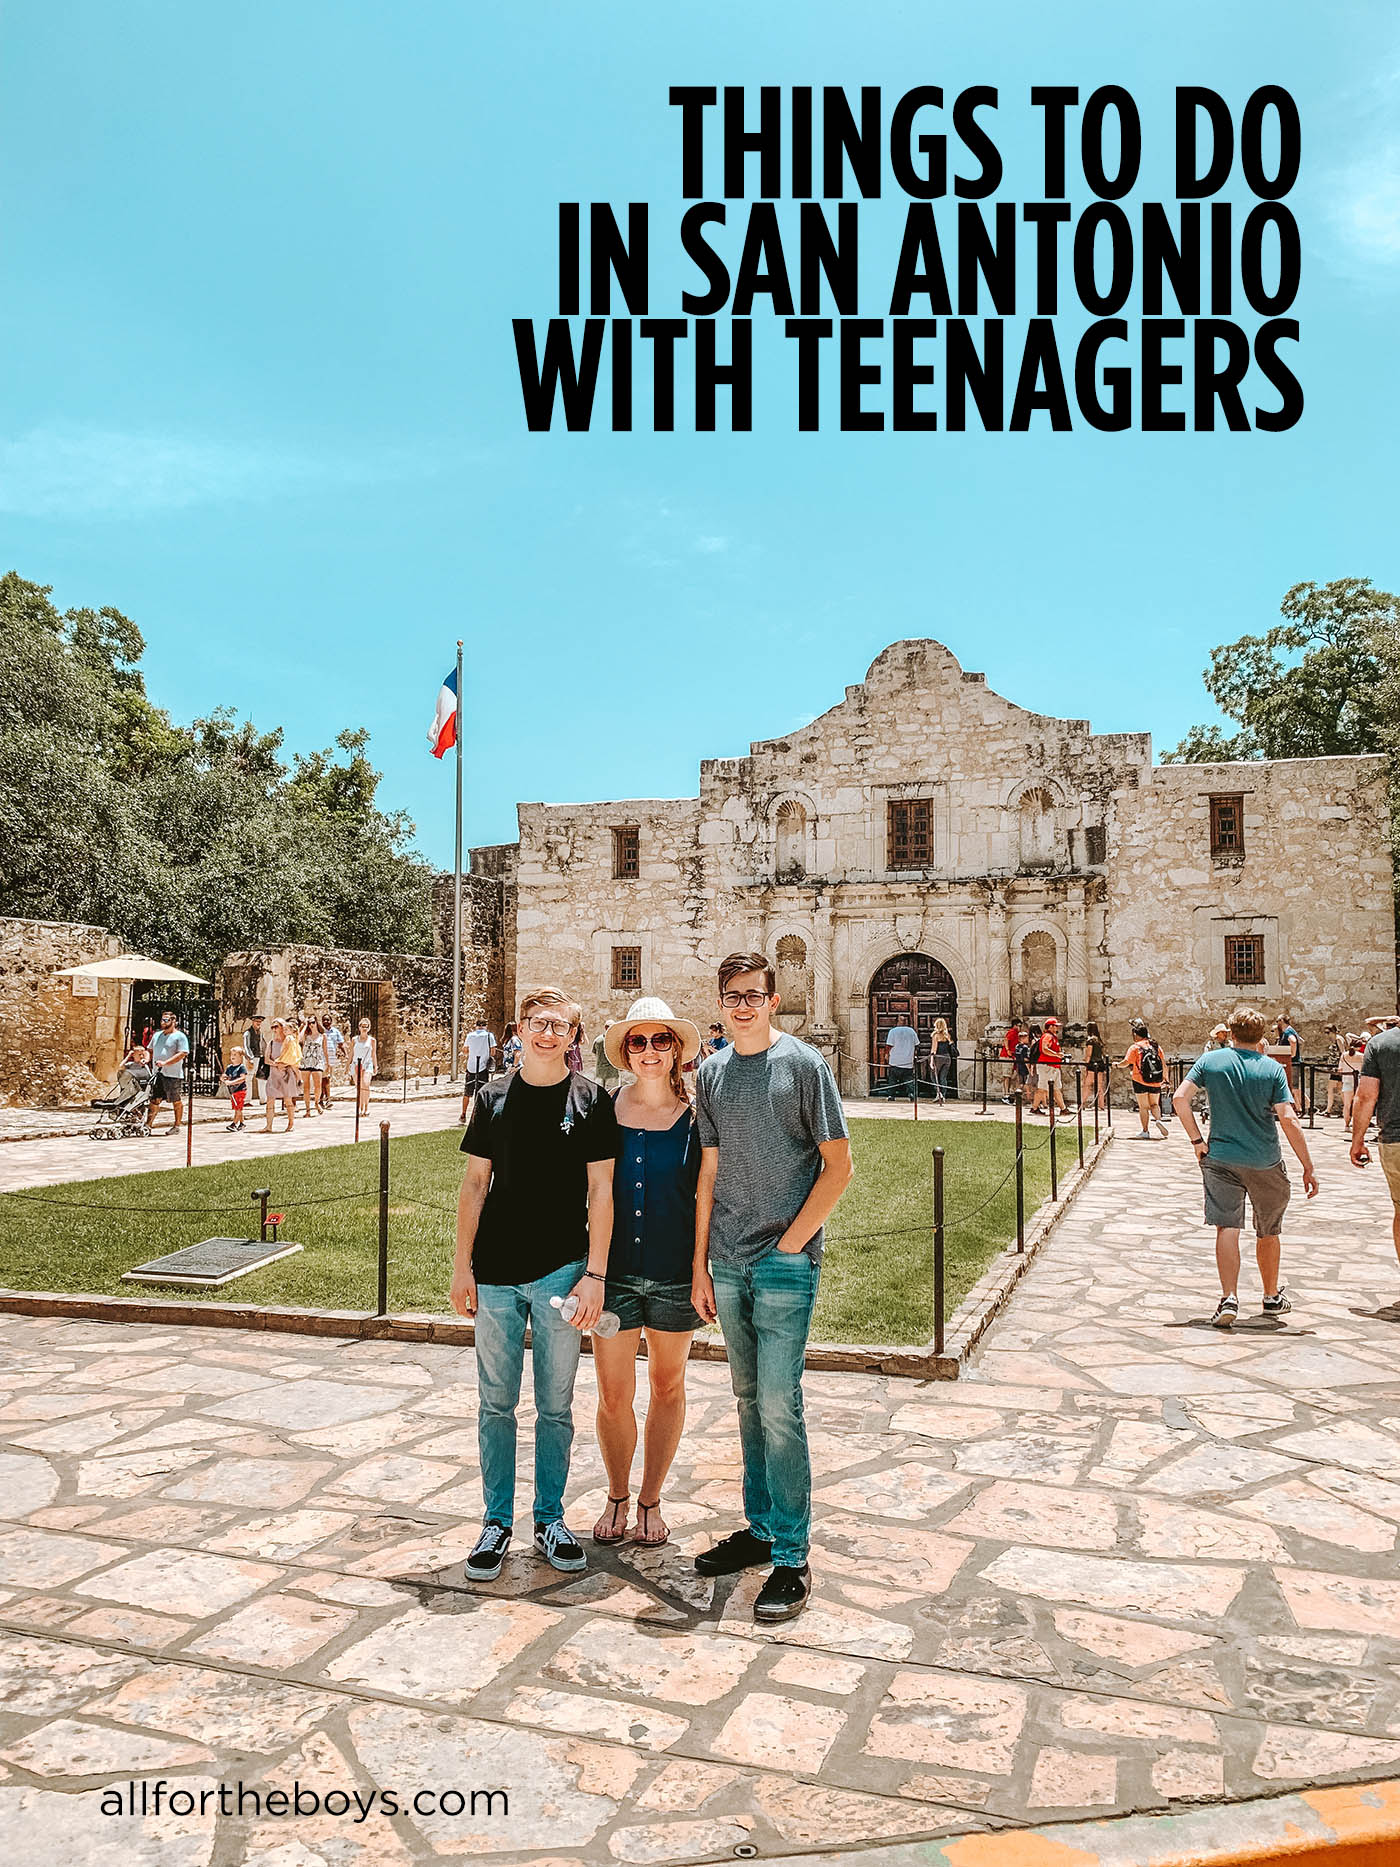 Things to do in San Antonio with Teenagers